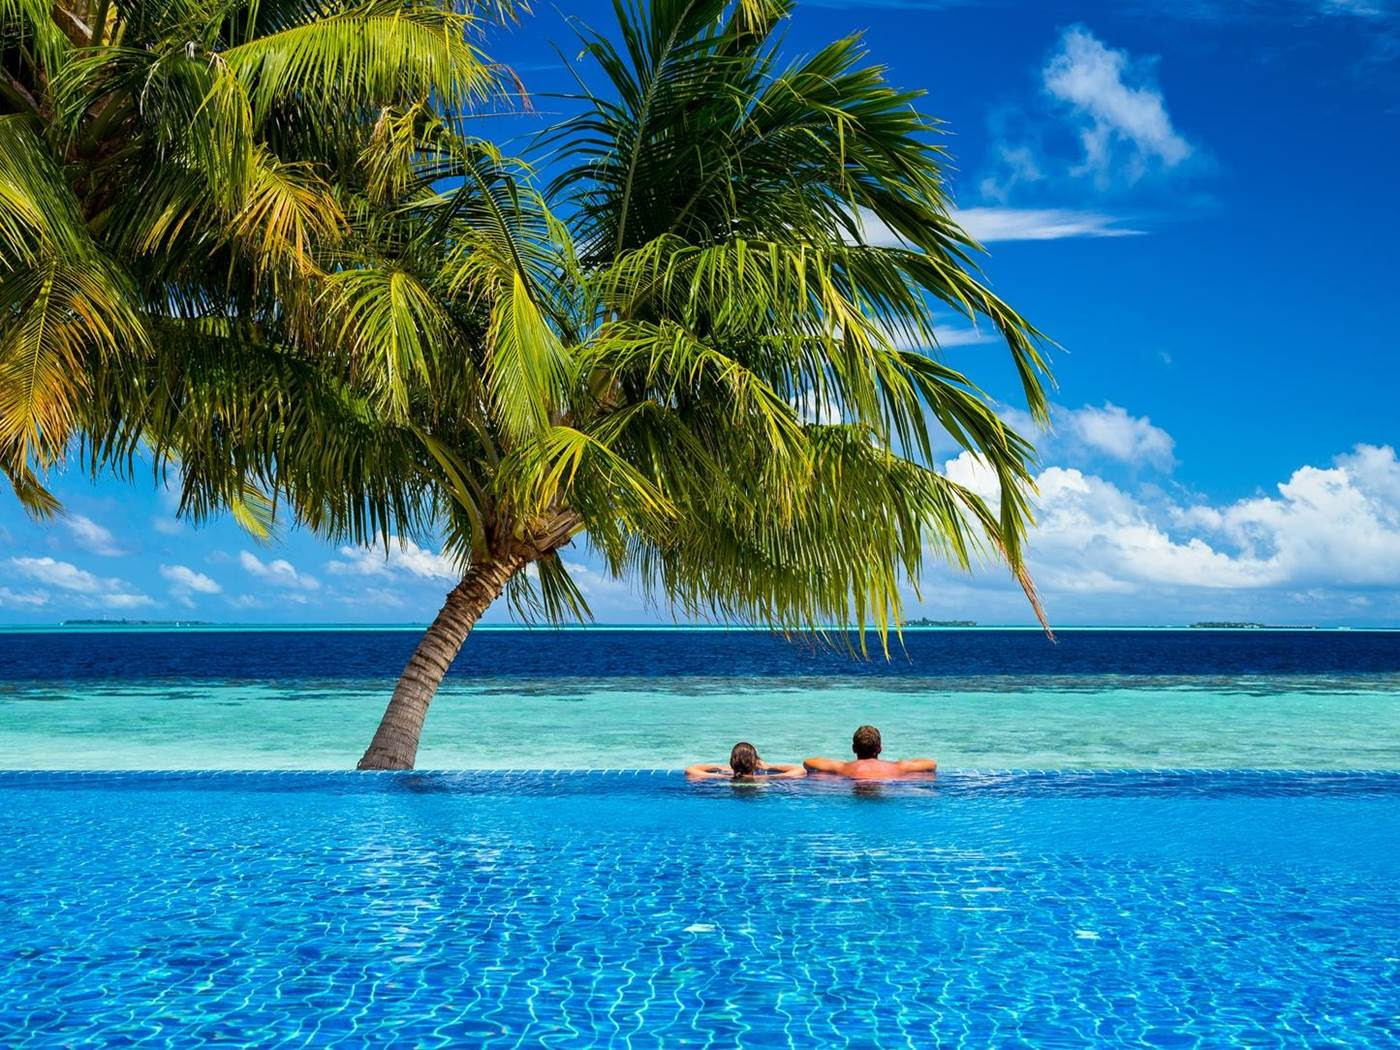 summer holiday dream in mauritius